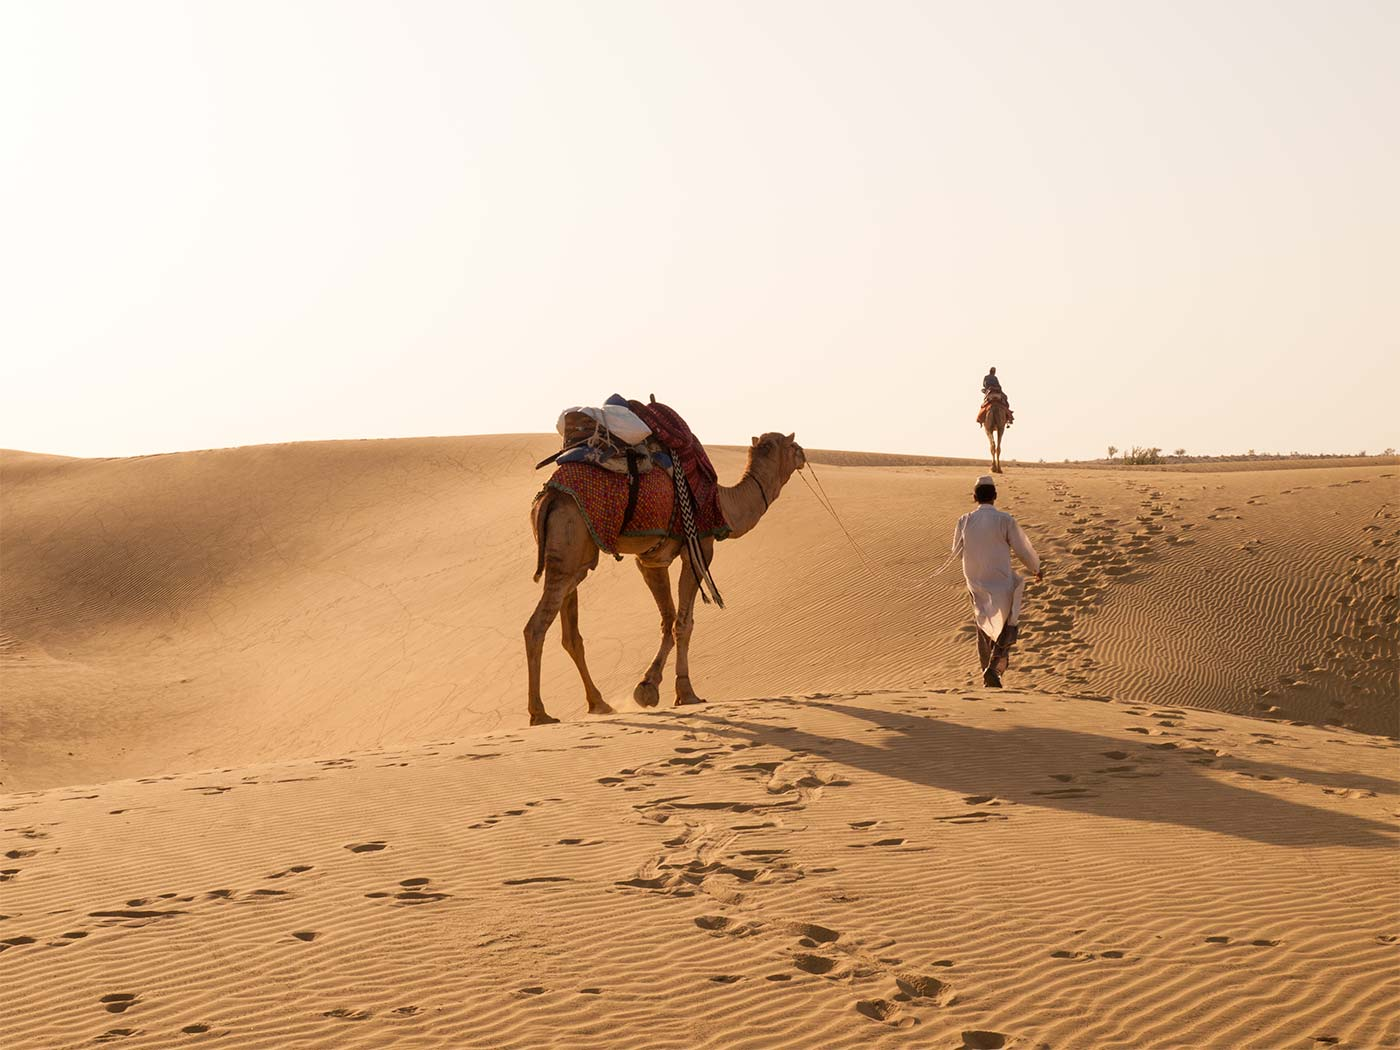 A night in the Thar Desert | Happymind Travels